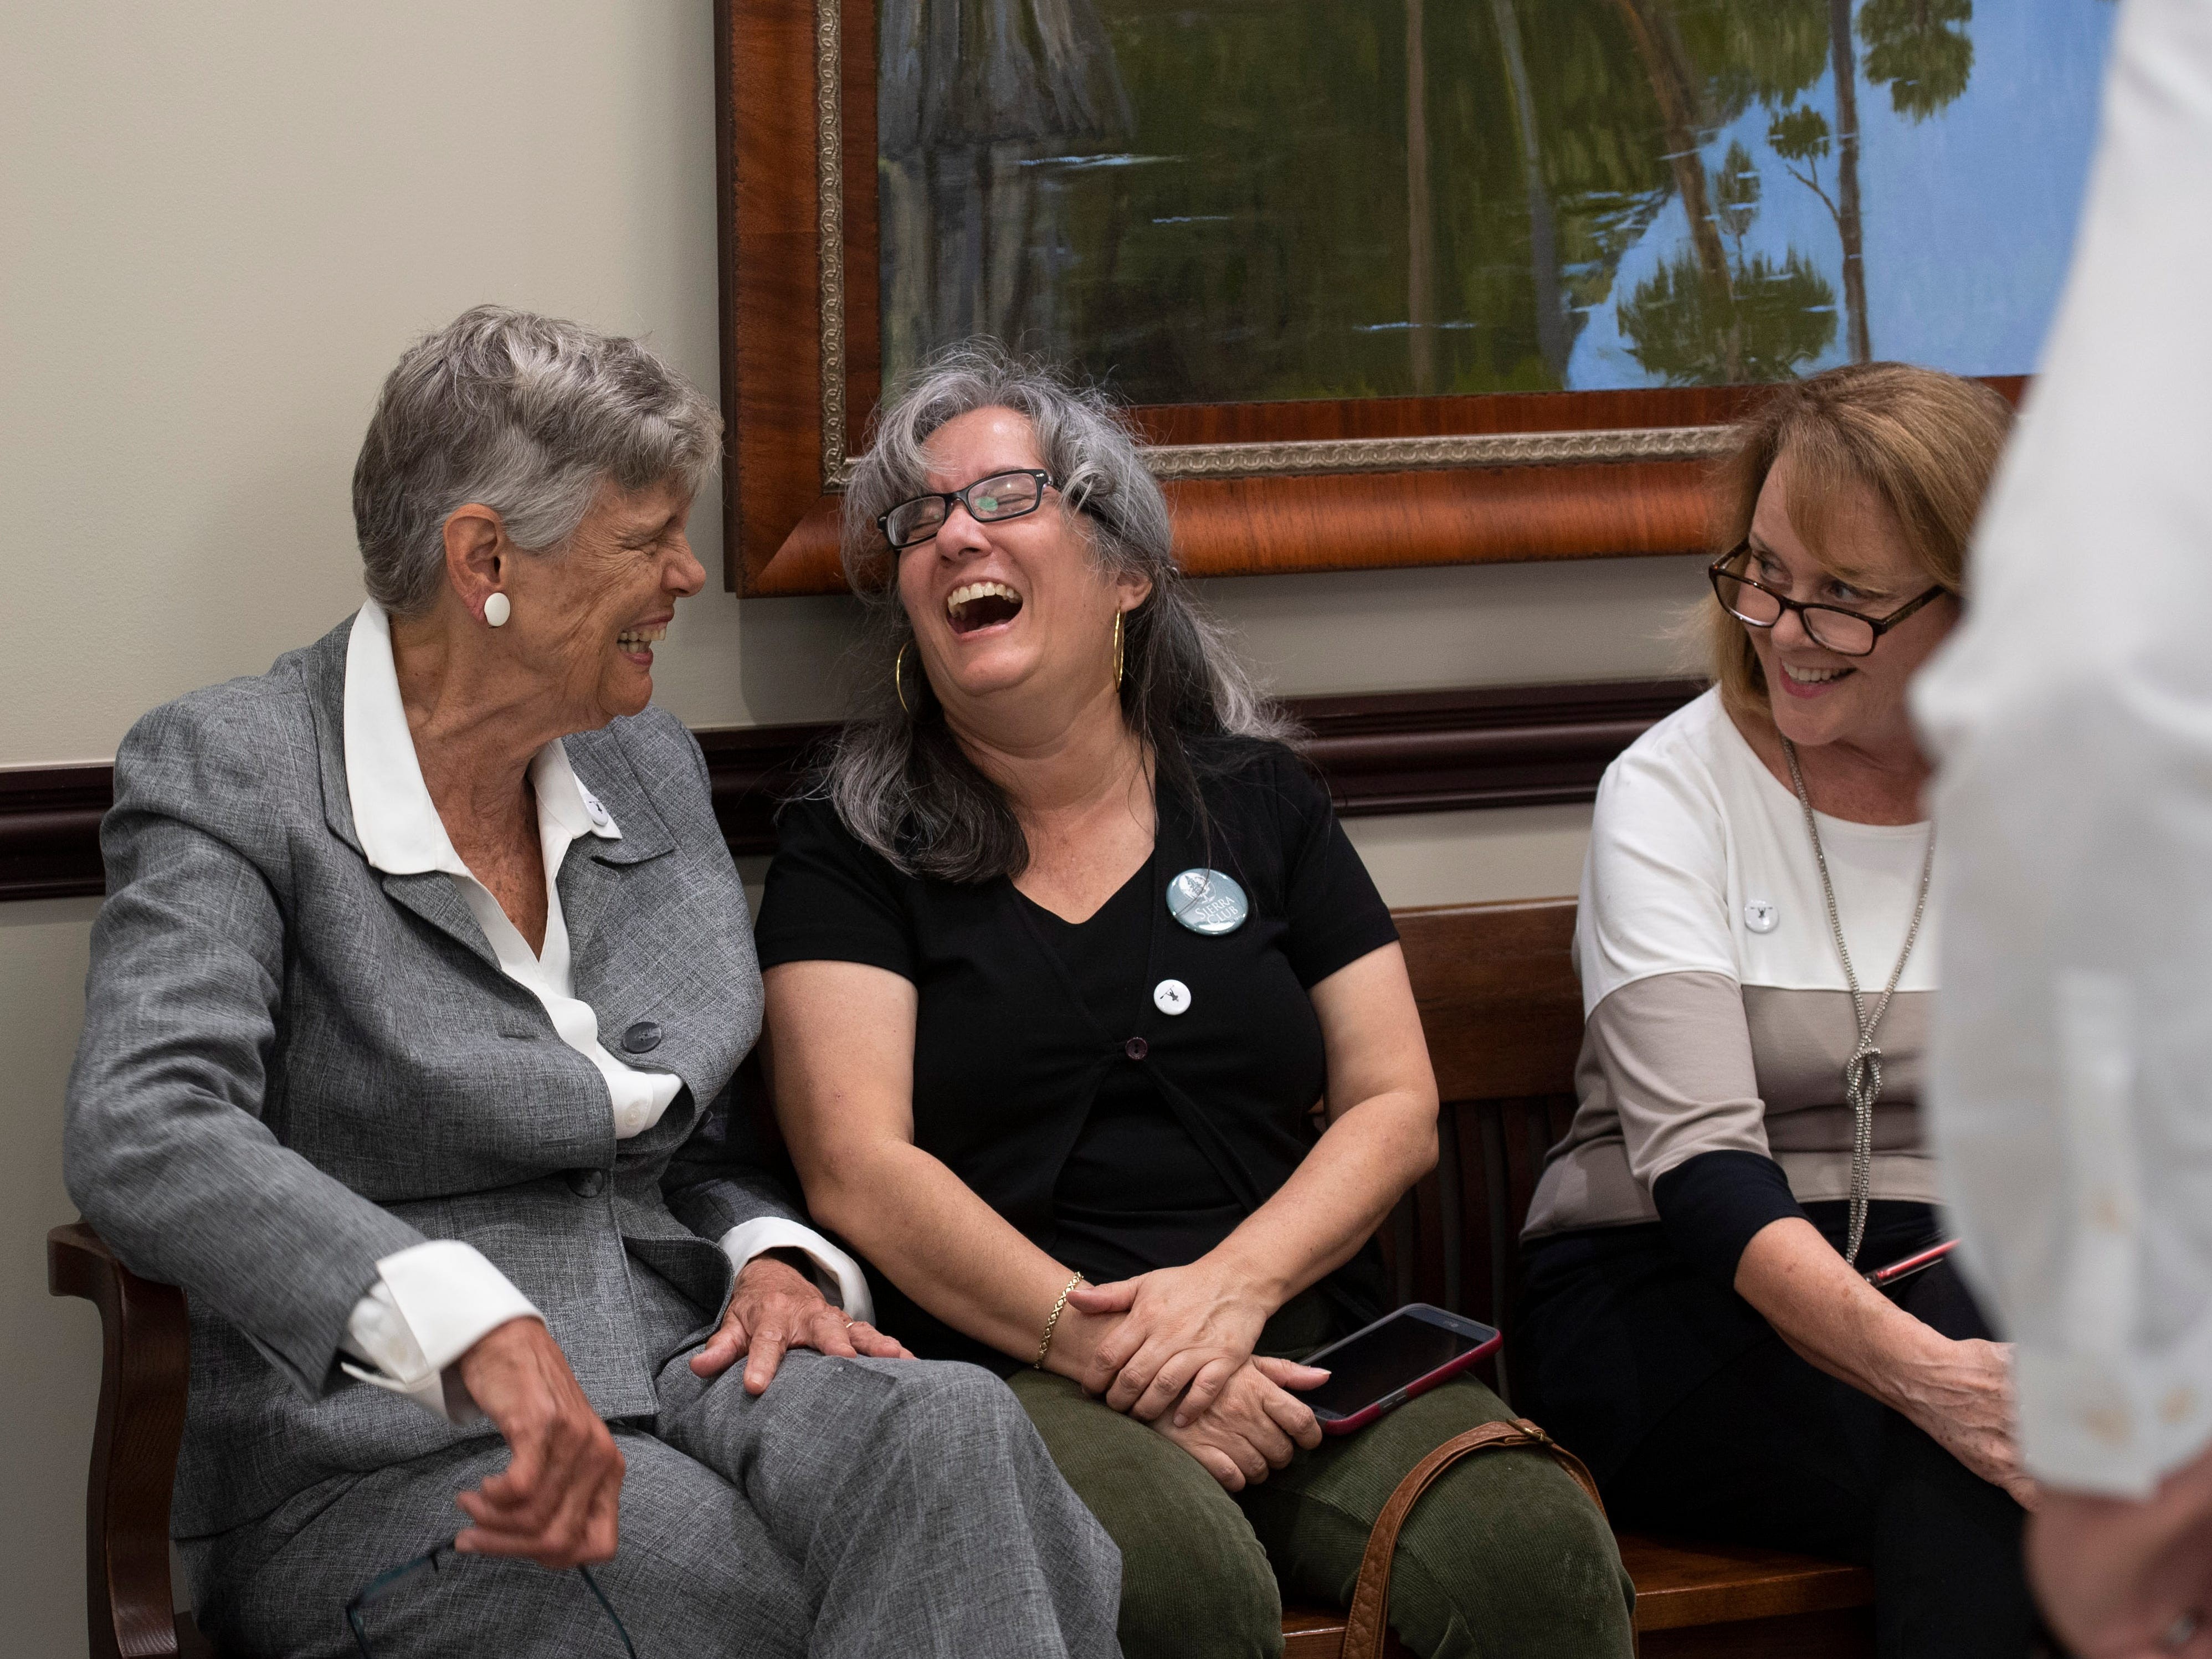 Supporters of Martin County environmentalist and former commissioner Maggy Hurchalla filled the lobby of the Fourth District Court of Appeal ahead of a hearing where Hurchalla appealed a Martin County jury's decision that she owes $4.4 million to rock quarry Lake Point for interfering in their contract with the county and the South Florida Water Management District on Tuesday, March 12, 2019, at the courthouse in West Palm Beach.